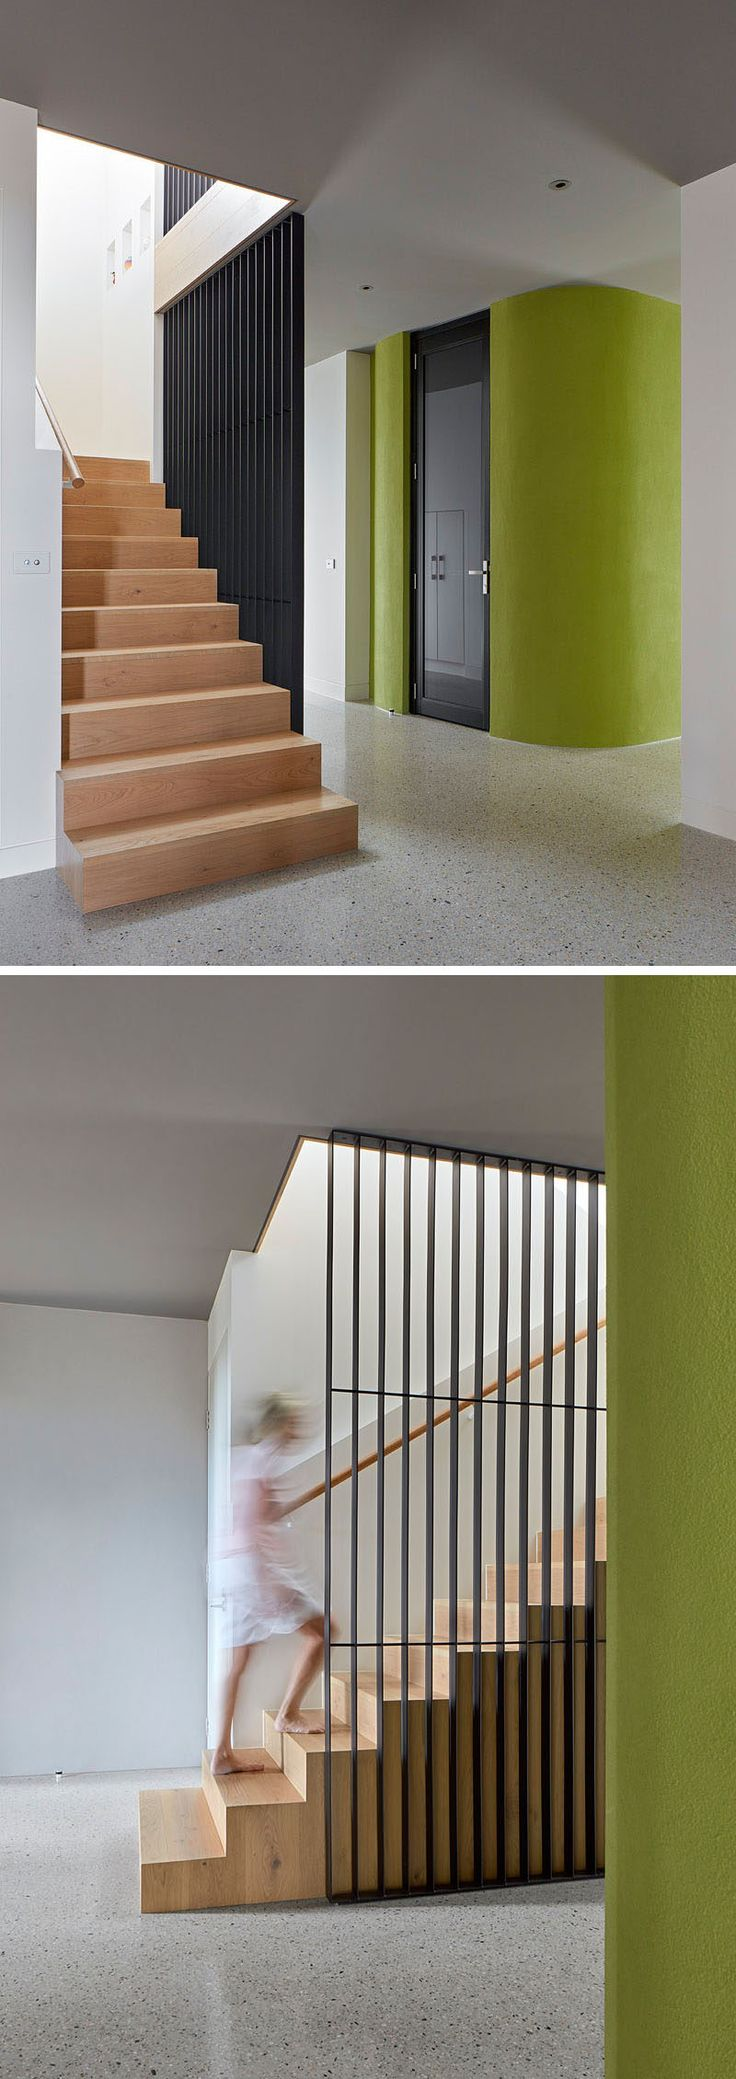 Upon entering this home, you are greeted by wooden stairs that take you up to the main living level of the house.